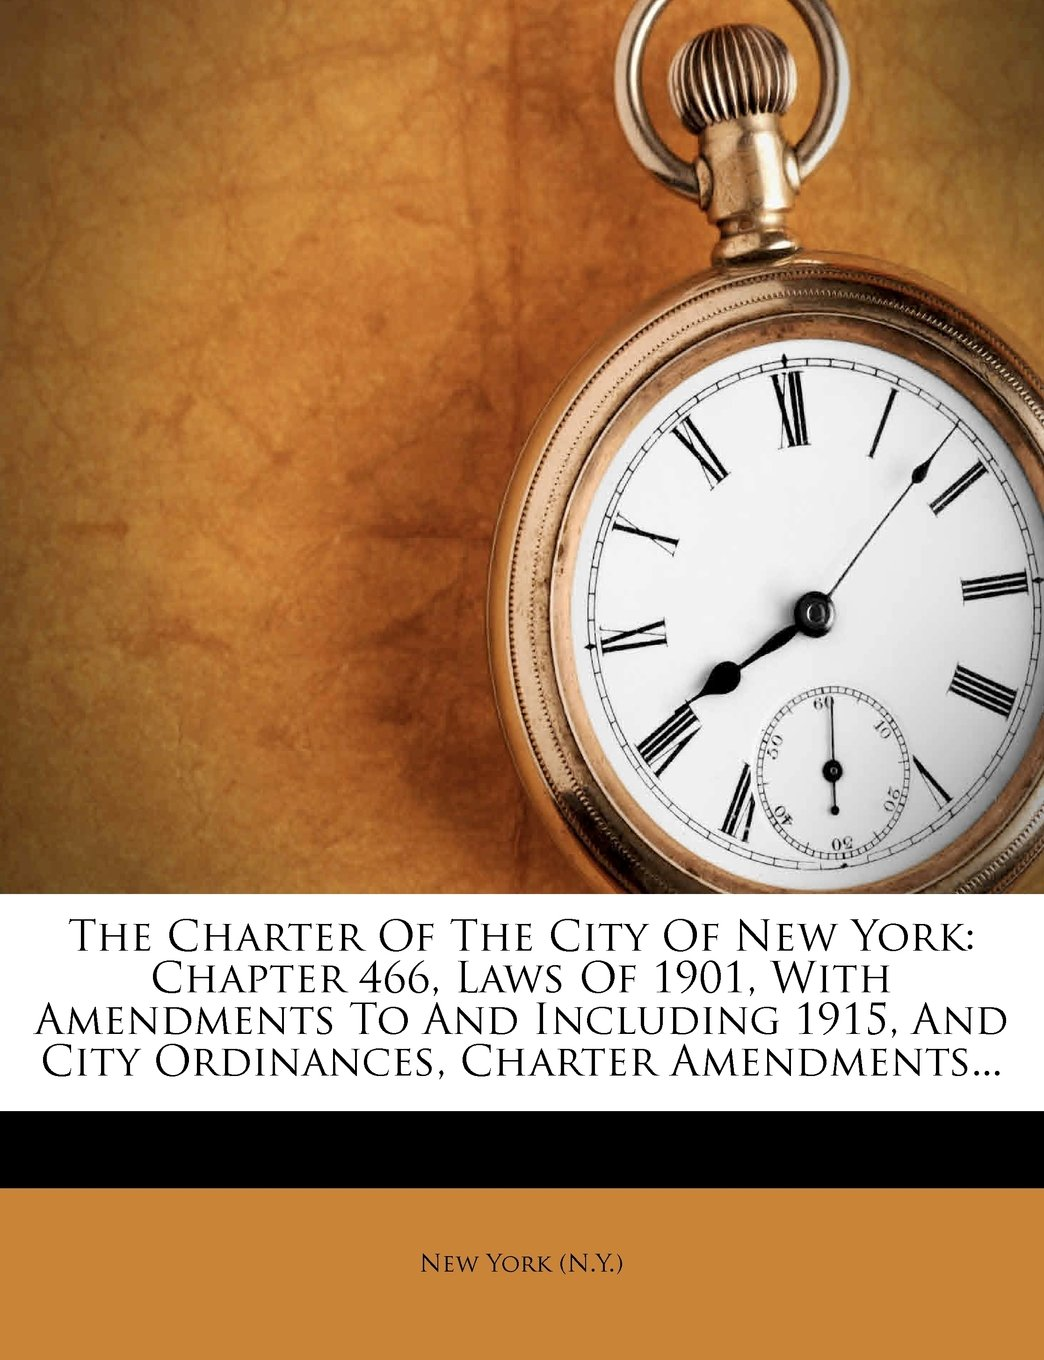 The Charter Of The City Of New York: Chapter 466, Laws Of 1901, With Amendments To And Including 1915, And City Ordinances, Charter Amendments... ebook